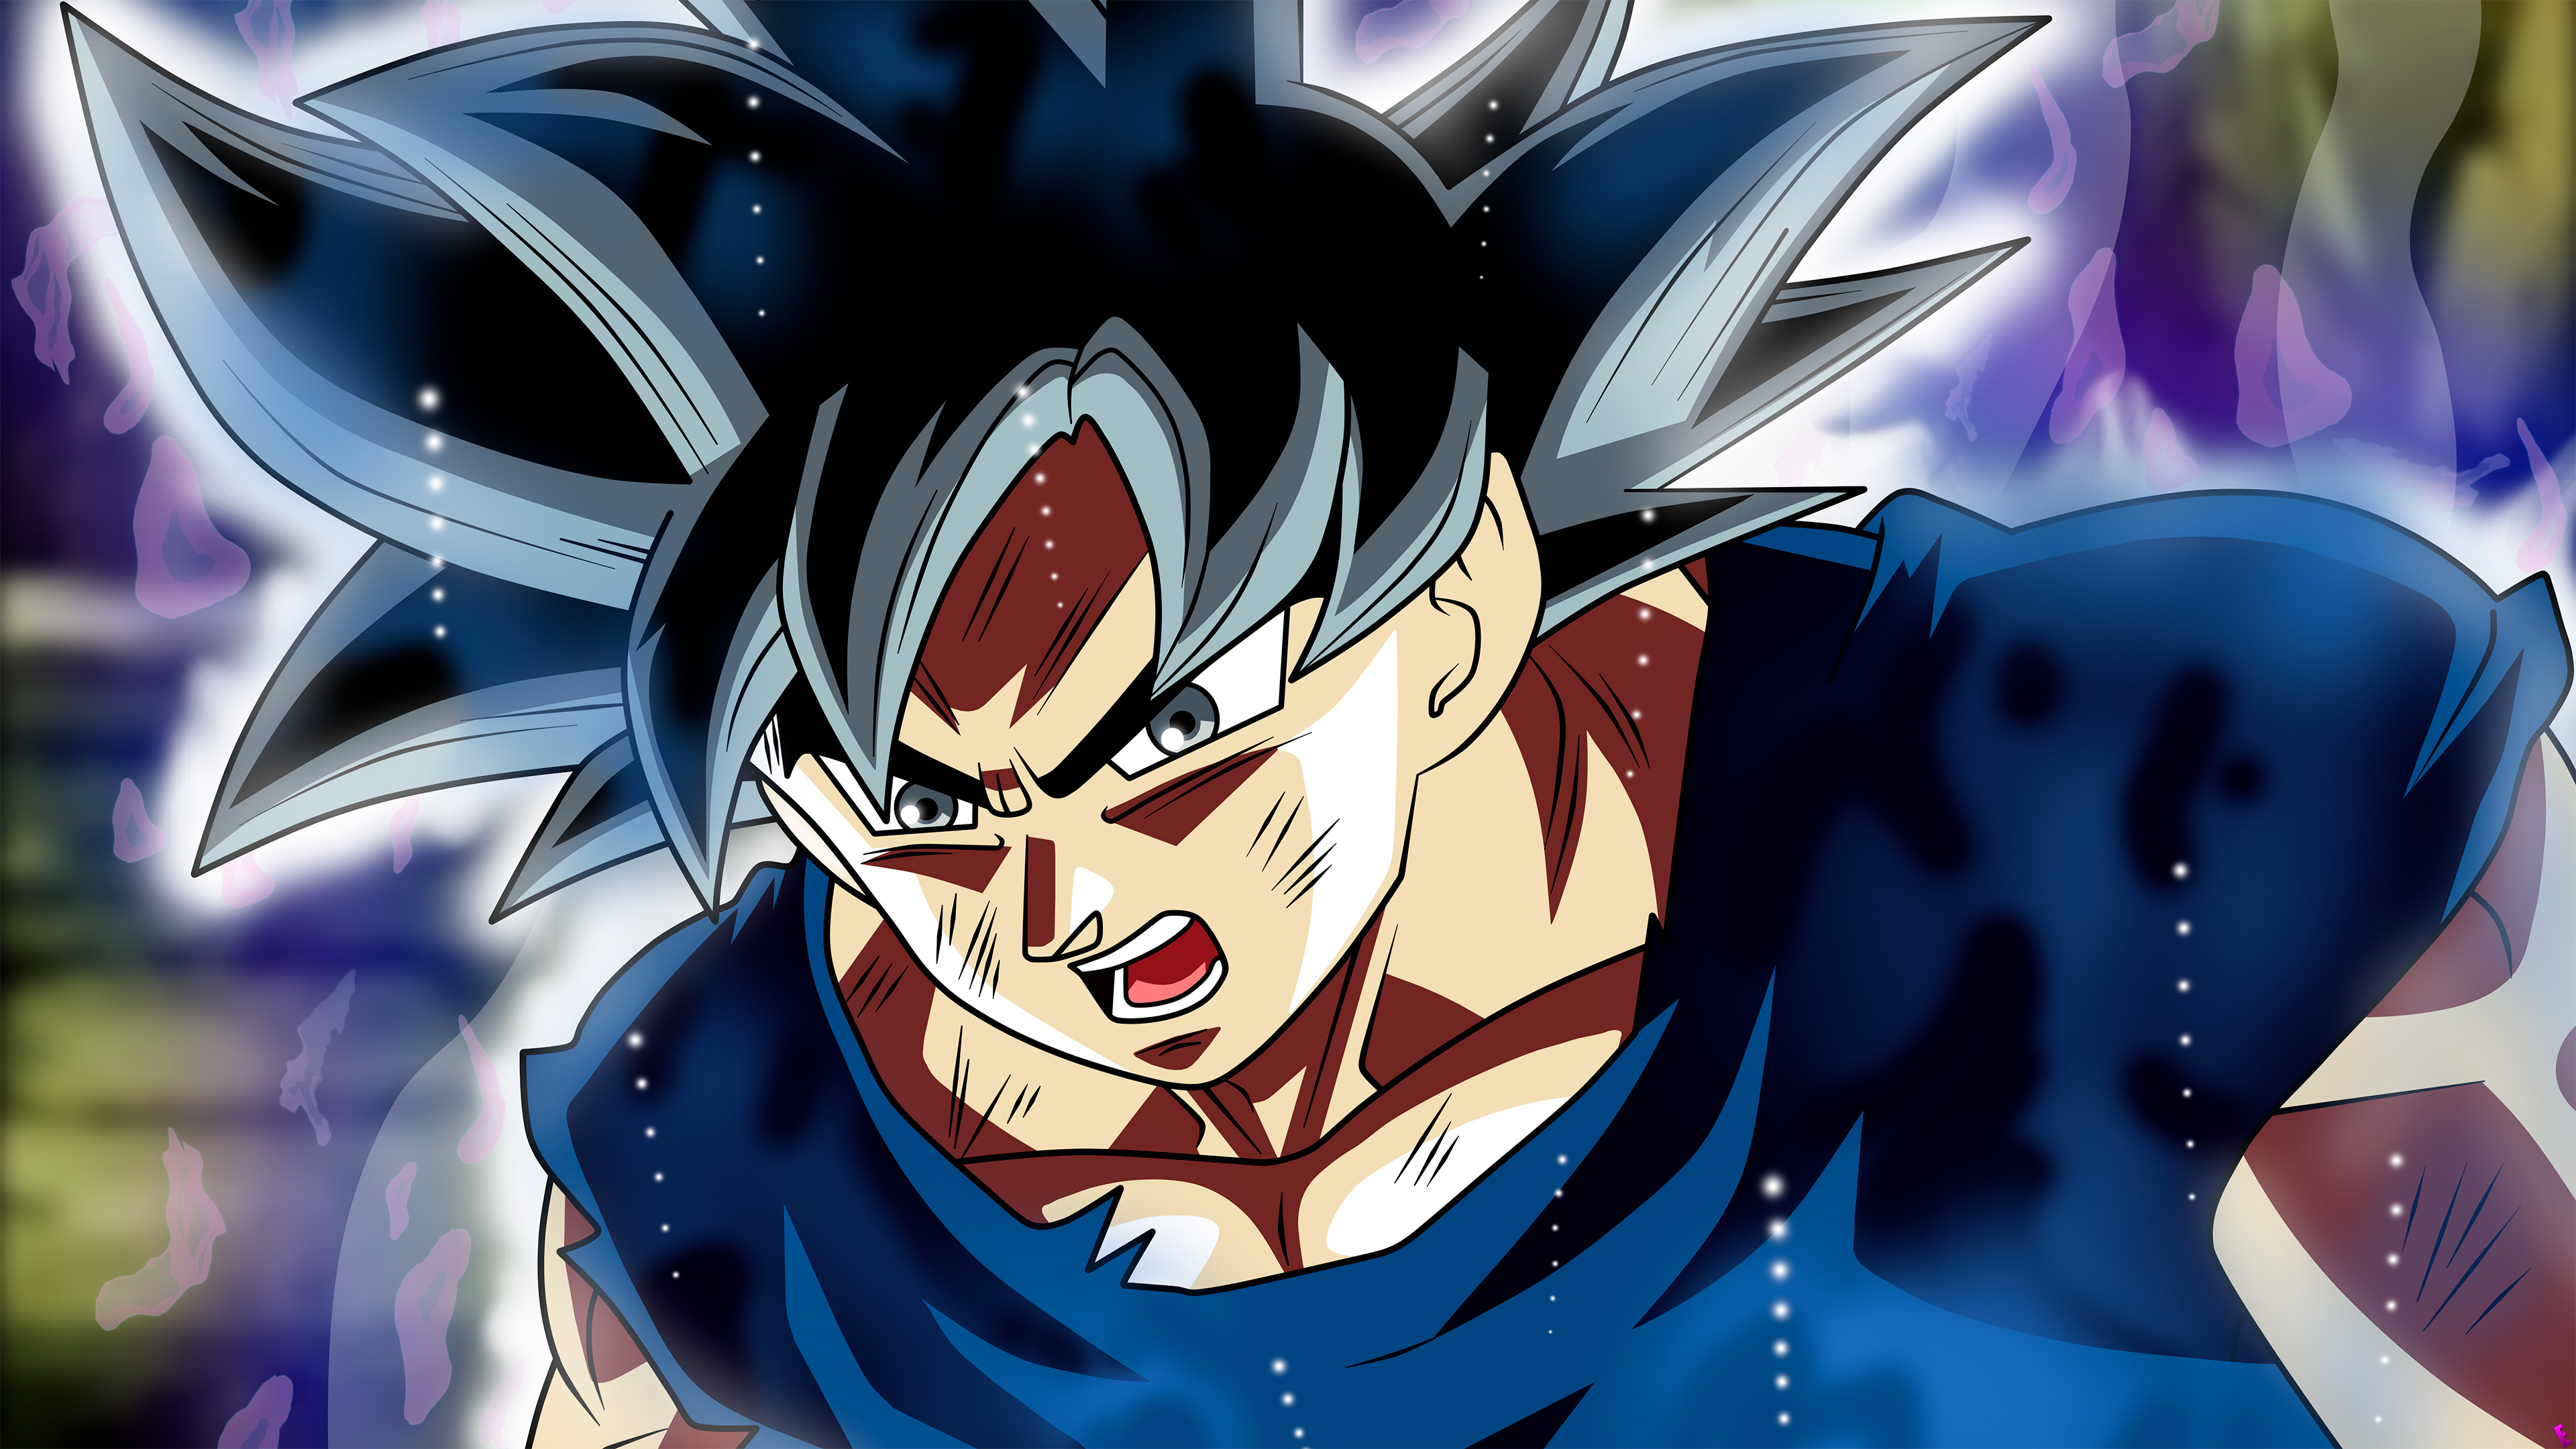 480x854 Goku 4k Android One Hd 4k Wallpapers Images Backgrounds Photos And Pictures